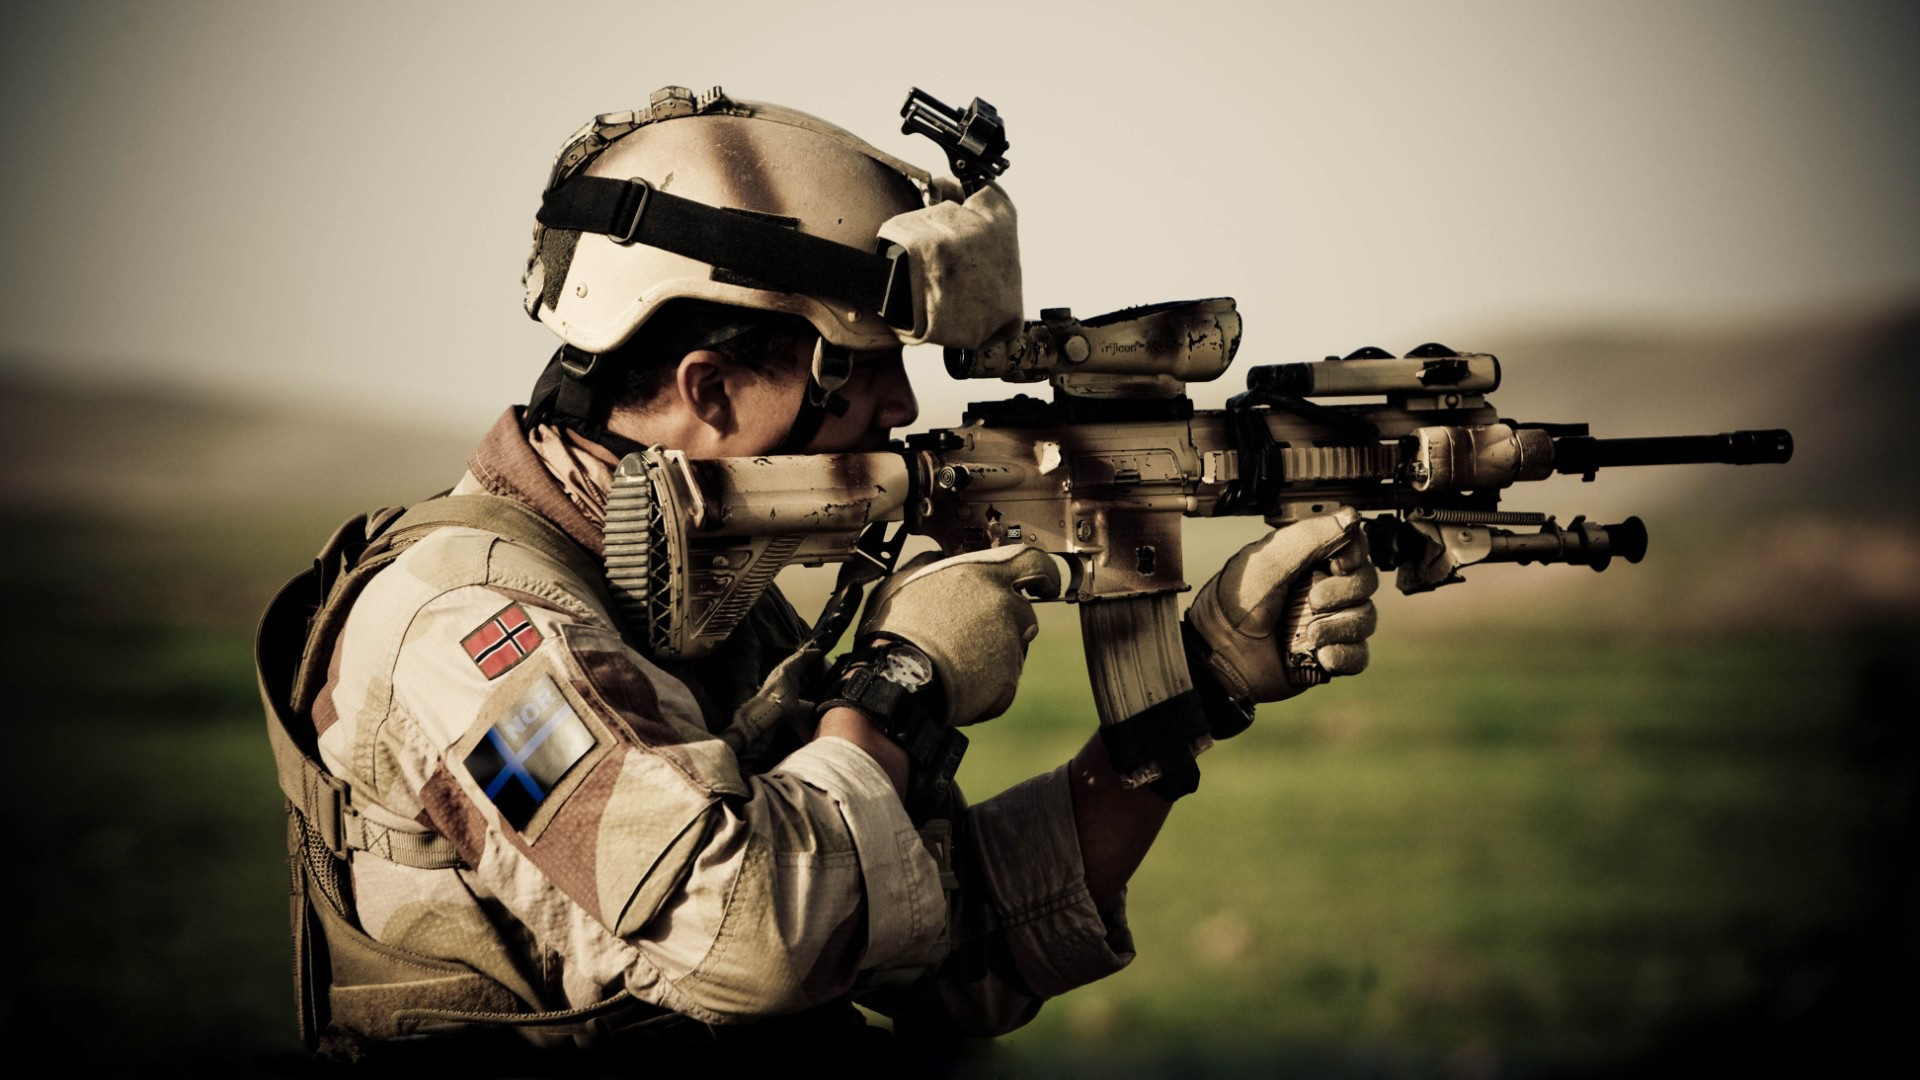 us army special forces images for backgrounds desktop free by Edvard Brian  (2016-06-21)